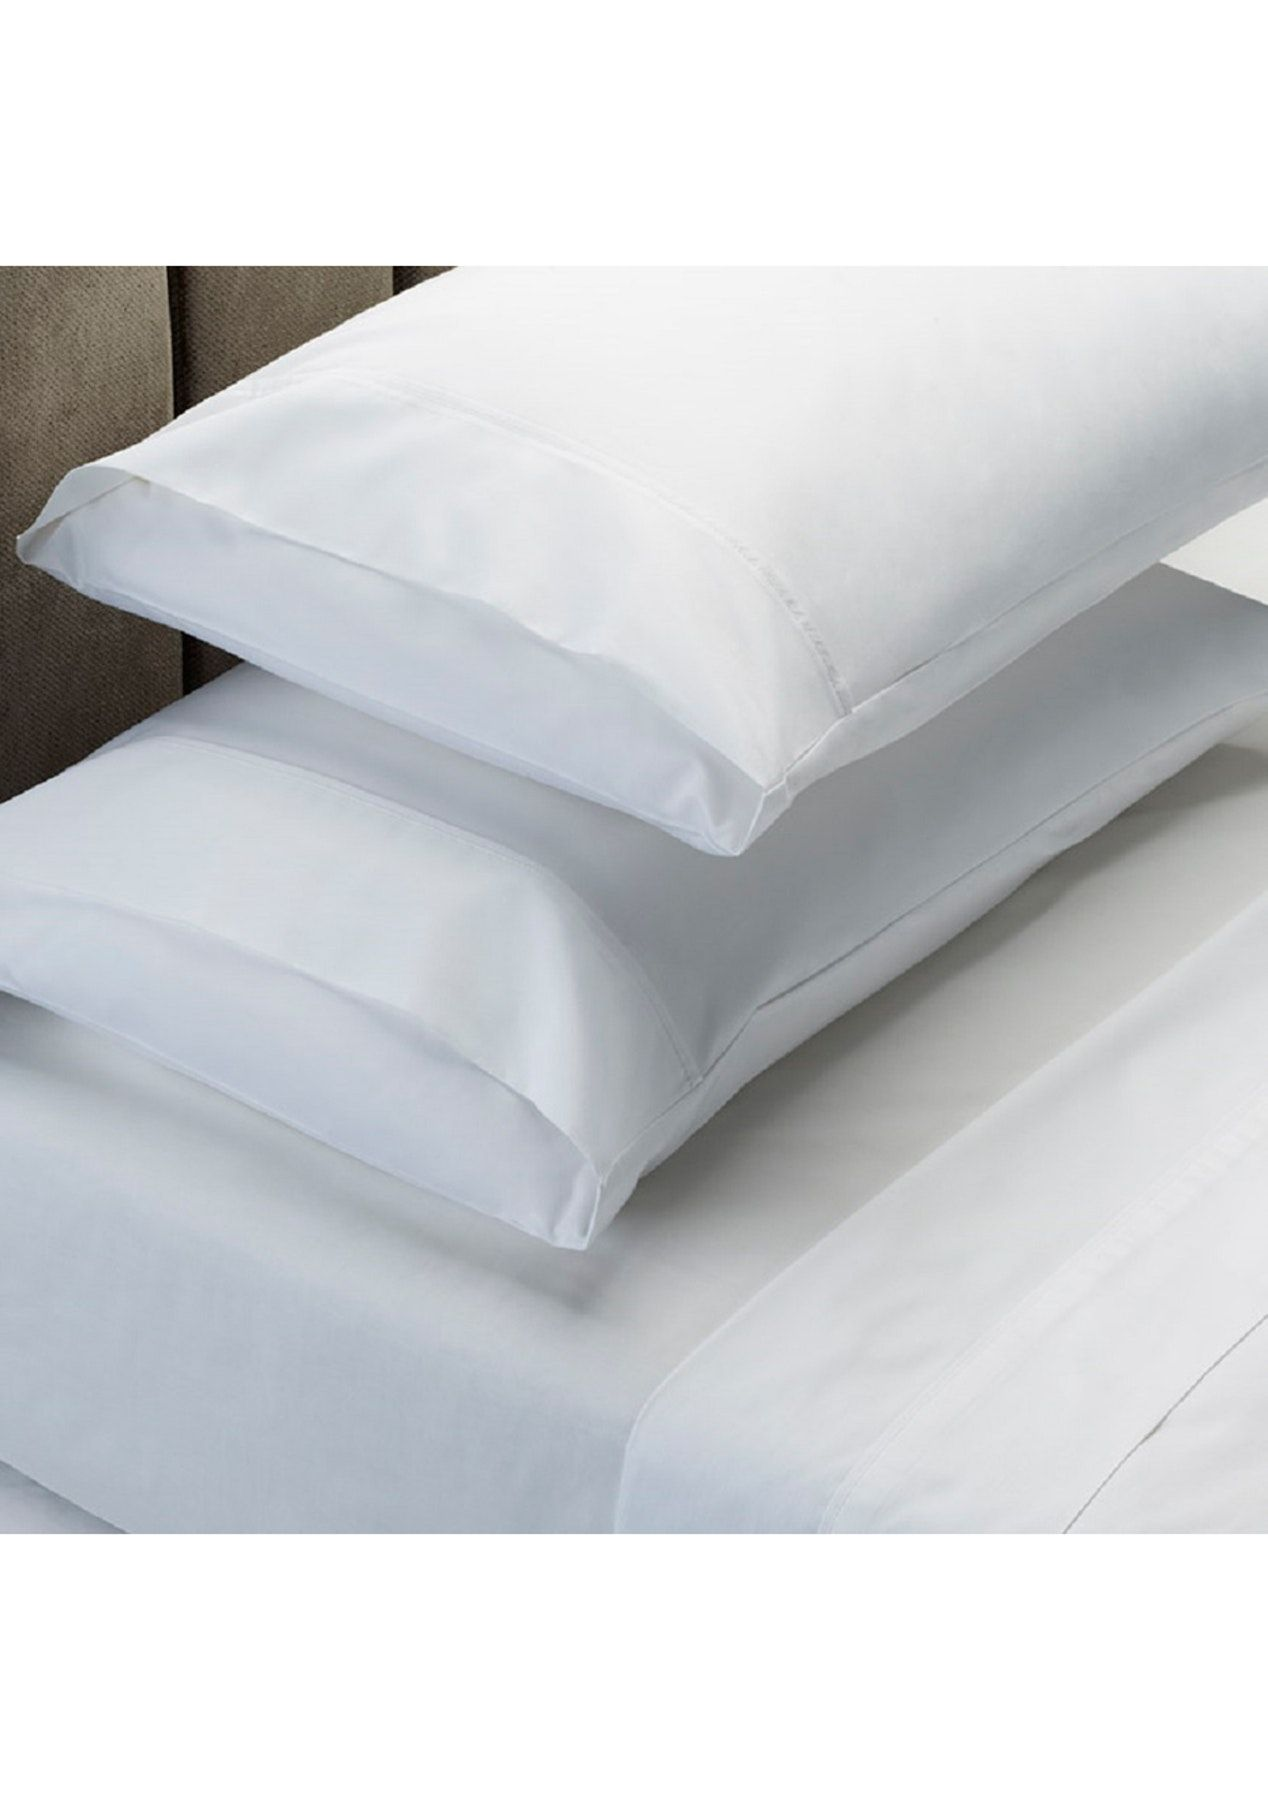 Park Avenue 1000 Thread Count Egyptian Cotton Sheet Sets Queen White Free Shipping Bedding